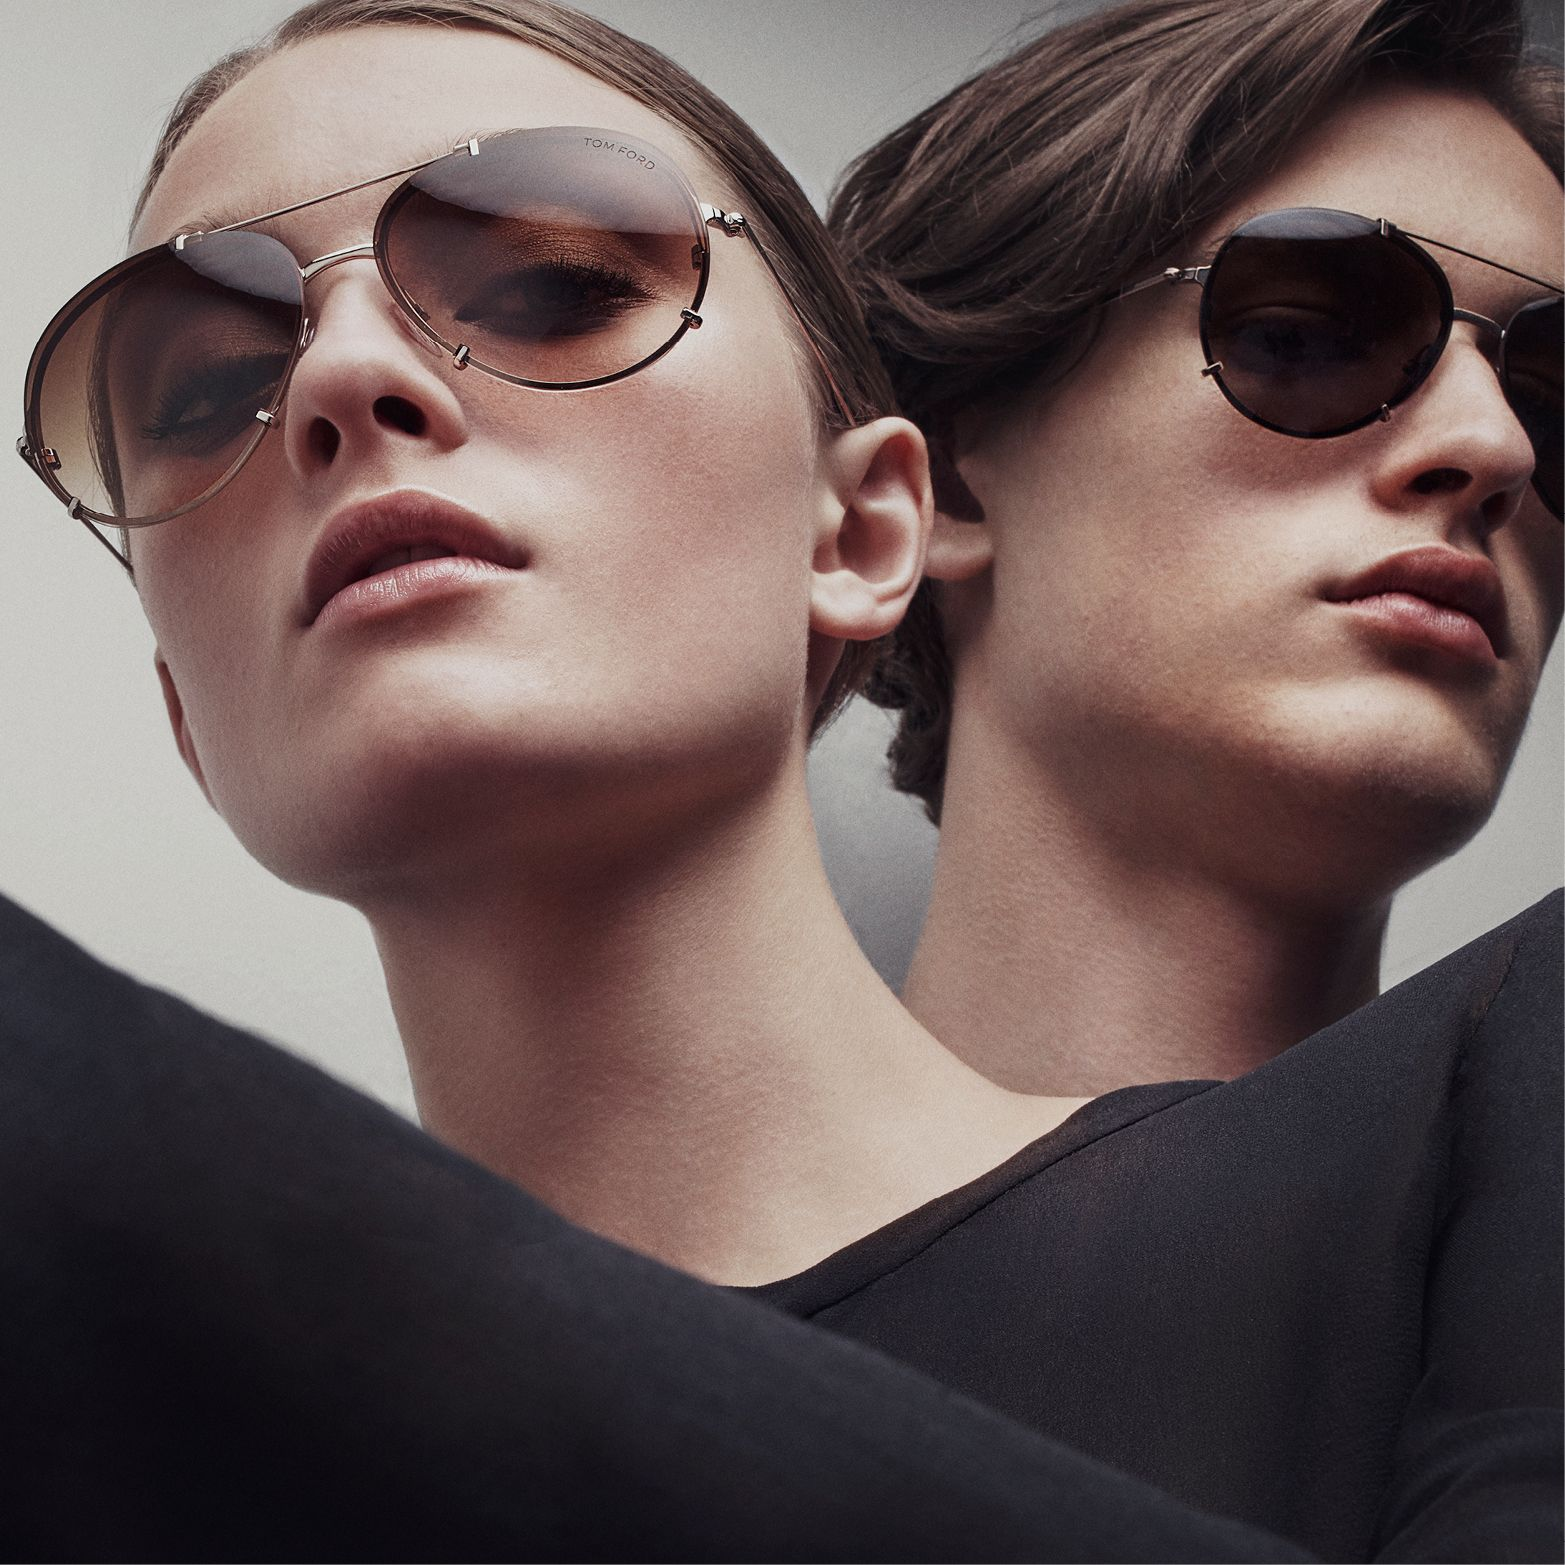 57b928329d The Dickon Sunglasses for Him and Her. #TOMFORD | TOM FORD EYEWEAR ...